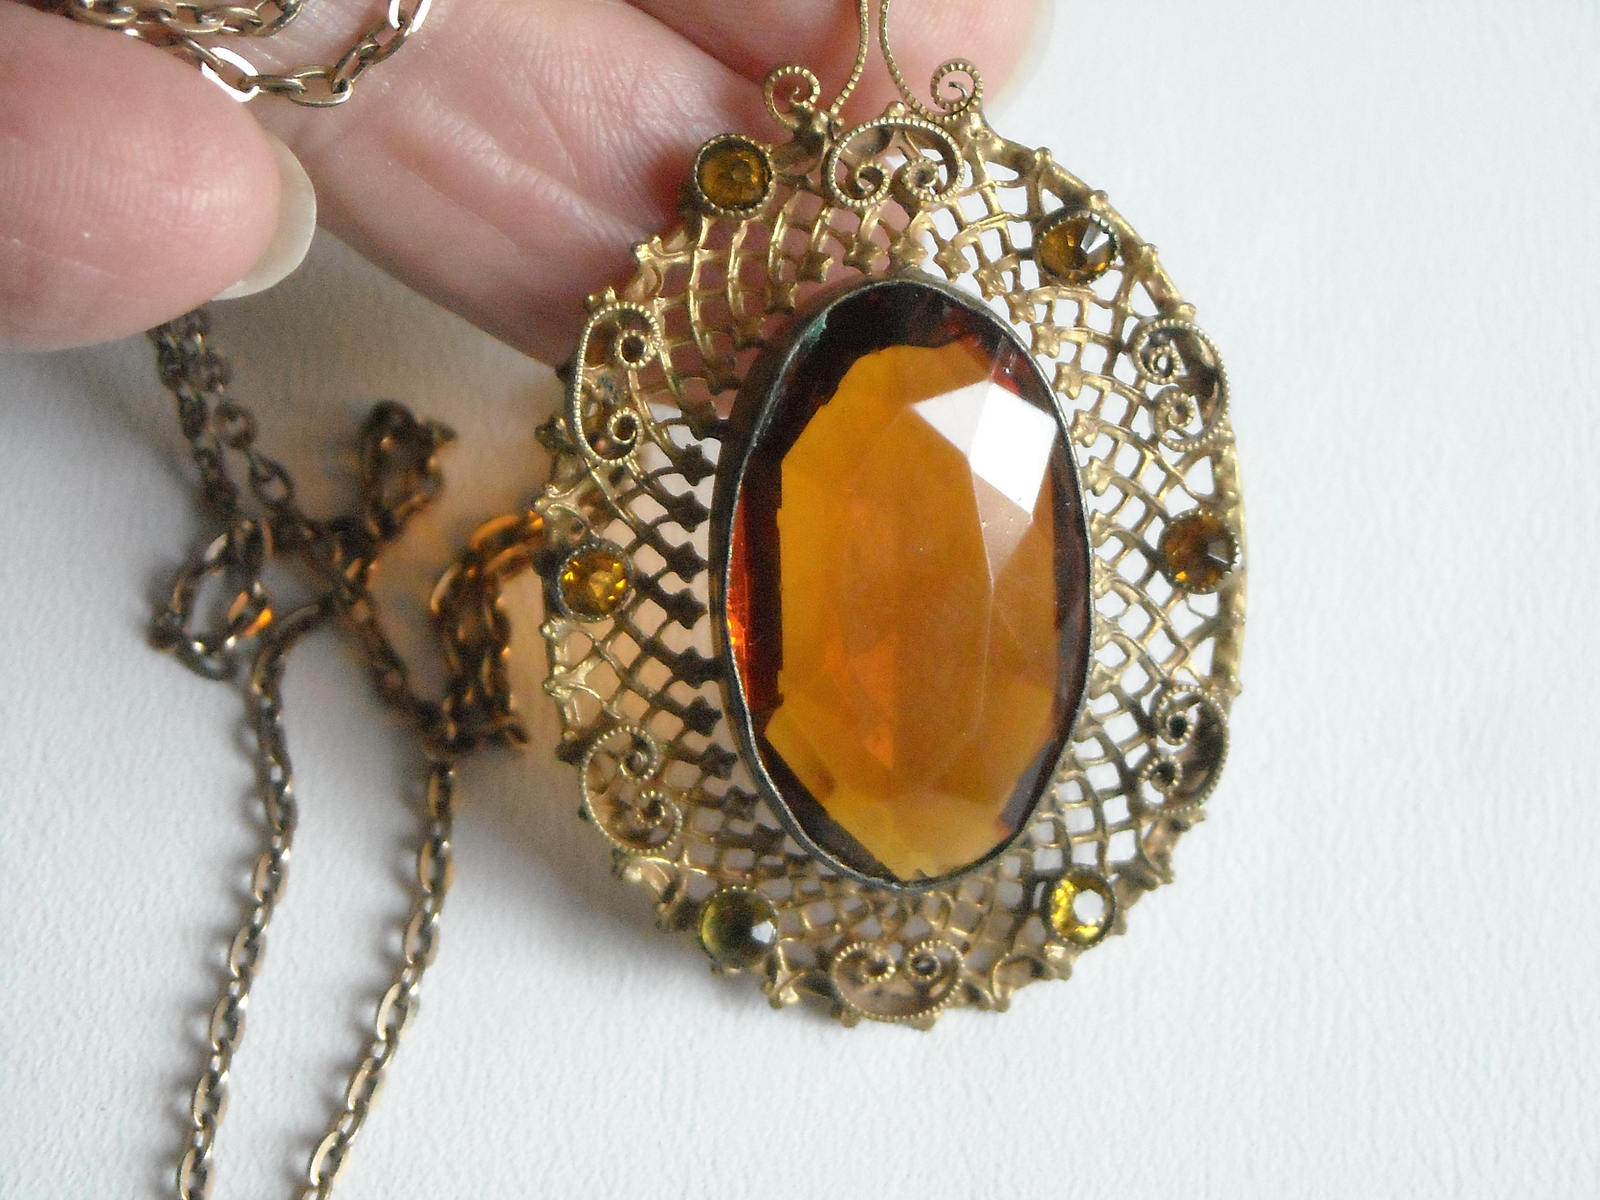 Vintage Gold Tone Filigree Necklace With A Golden Amber Glass Center & Side Sets